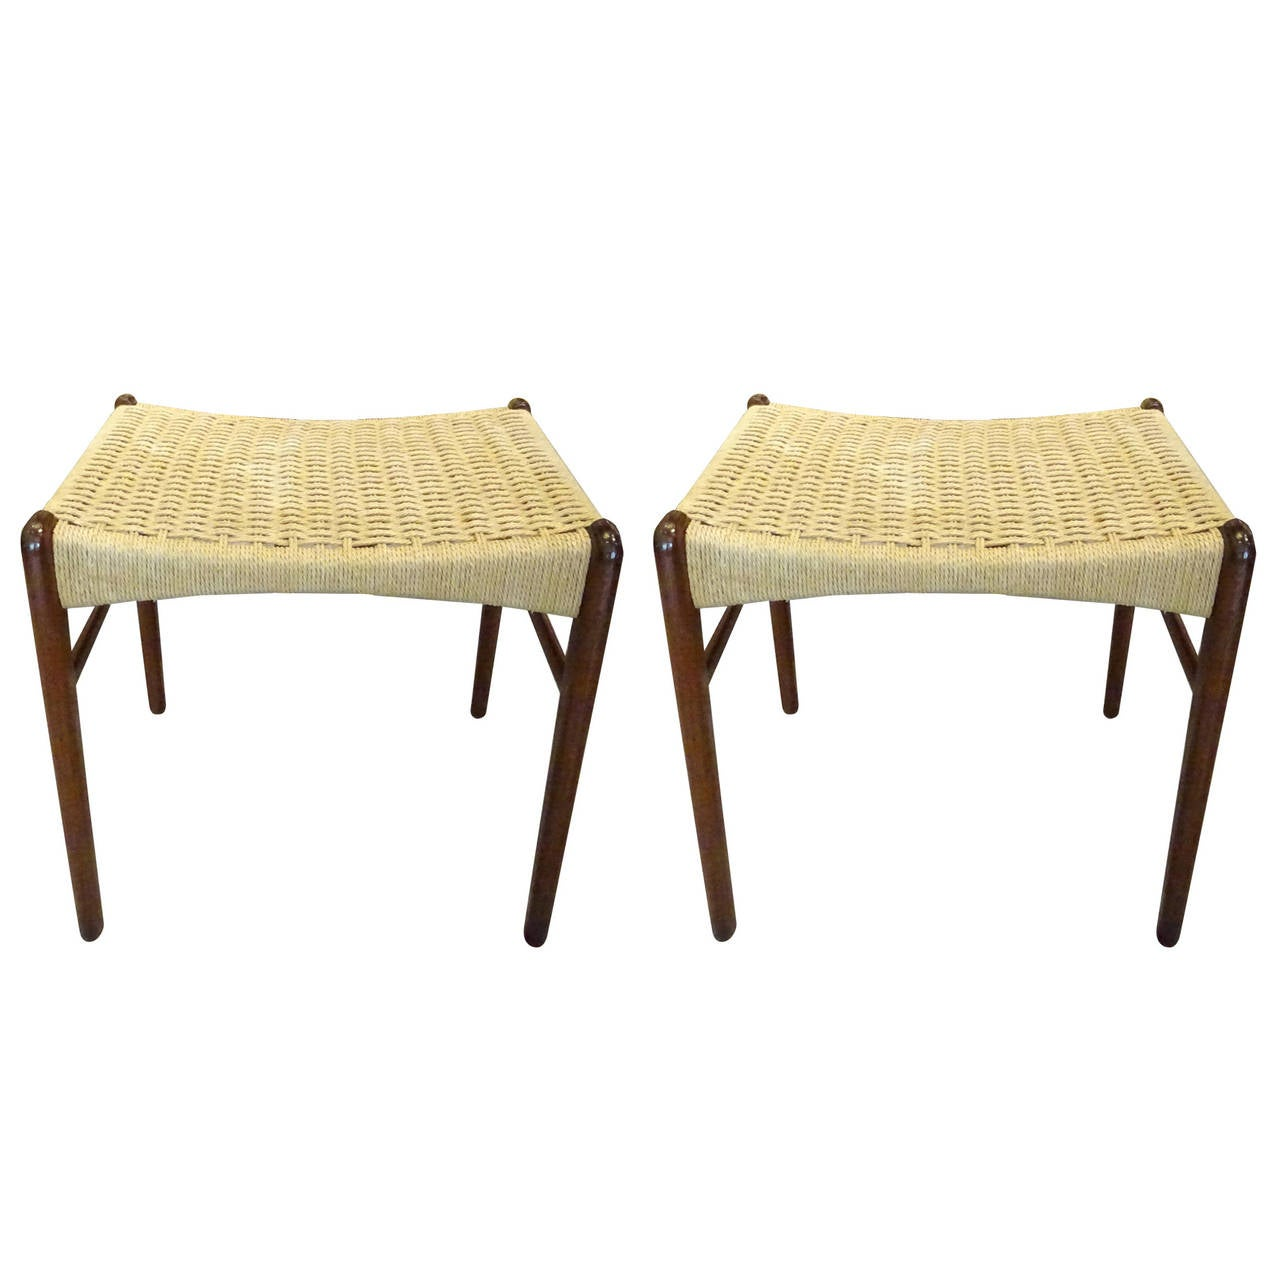 Hans Wegner Style Woven Rope Bench At 1stdibs